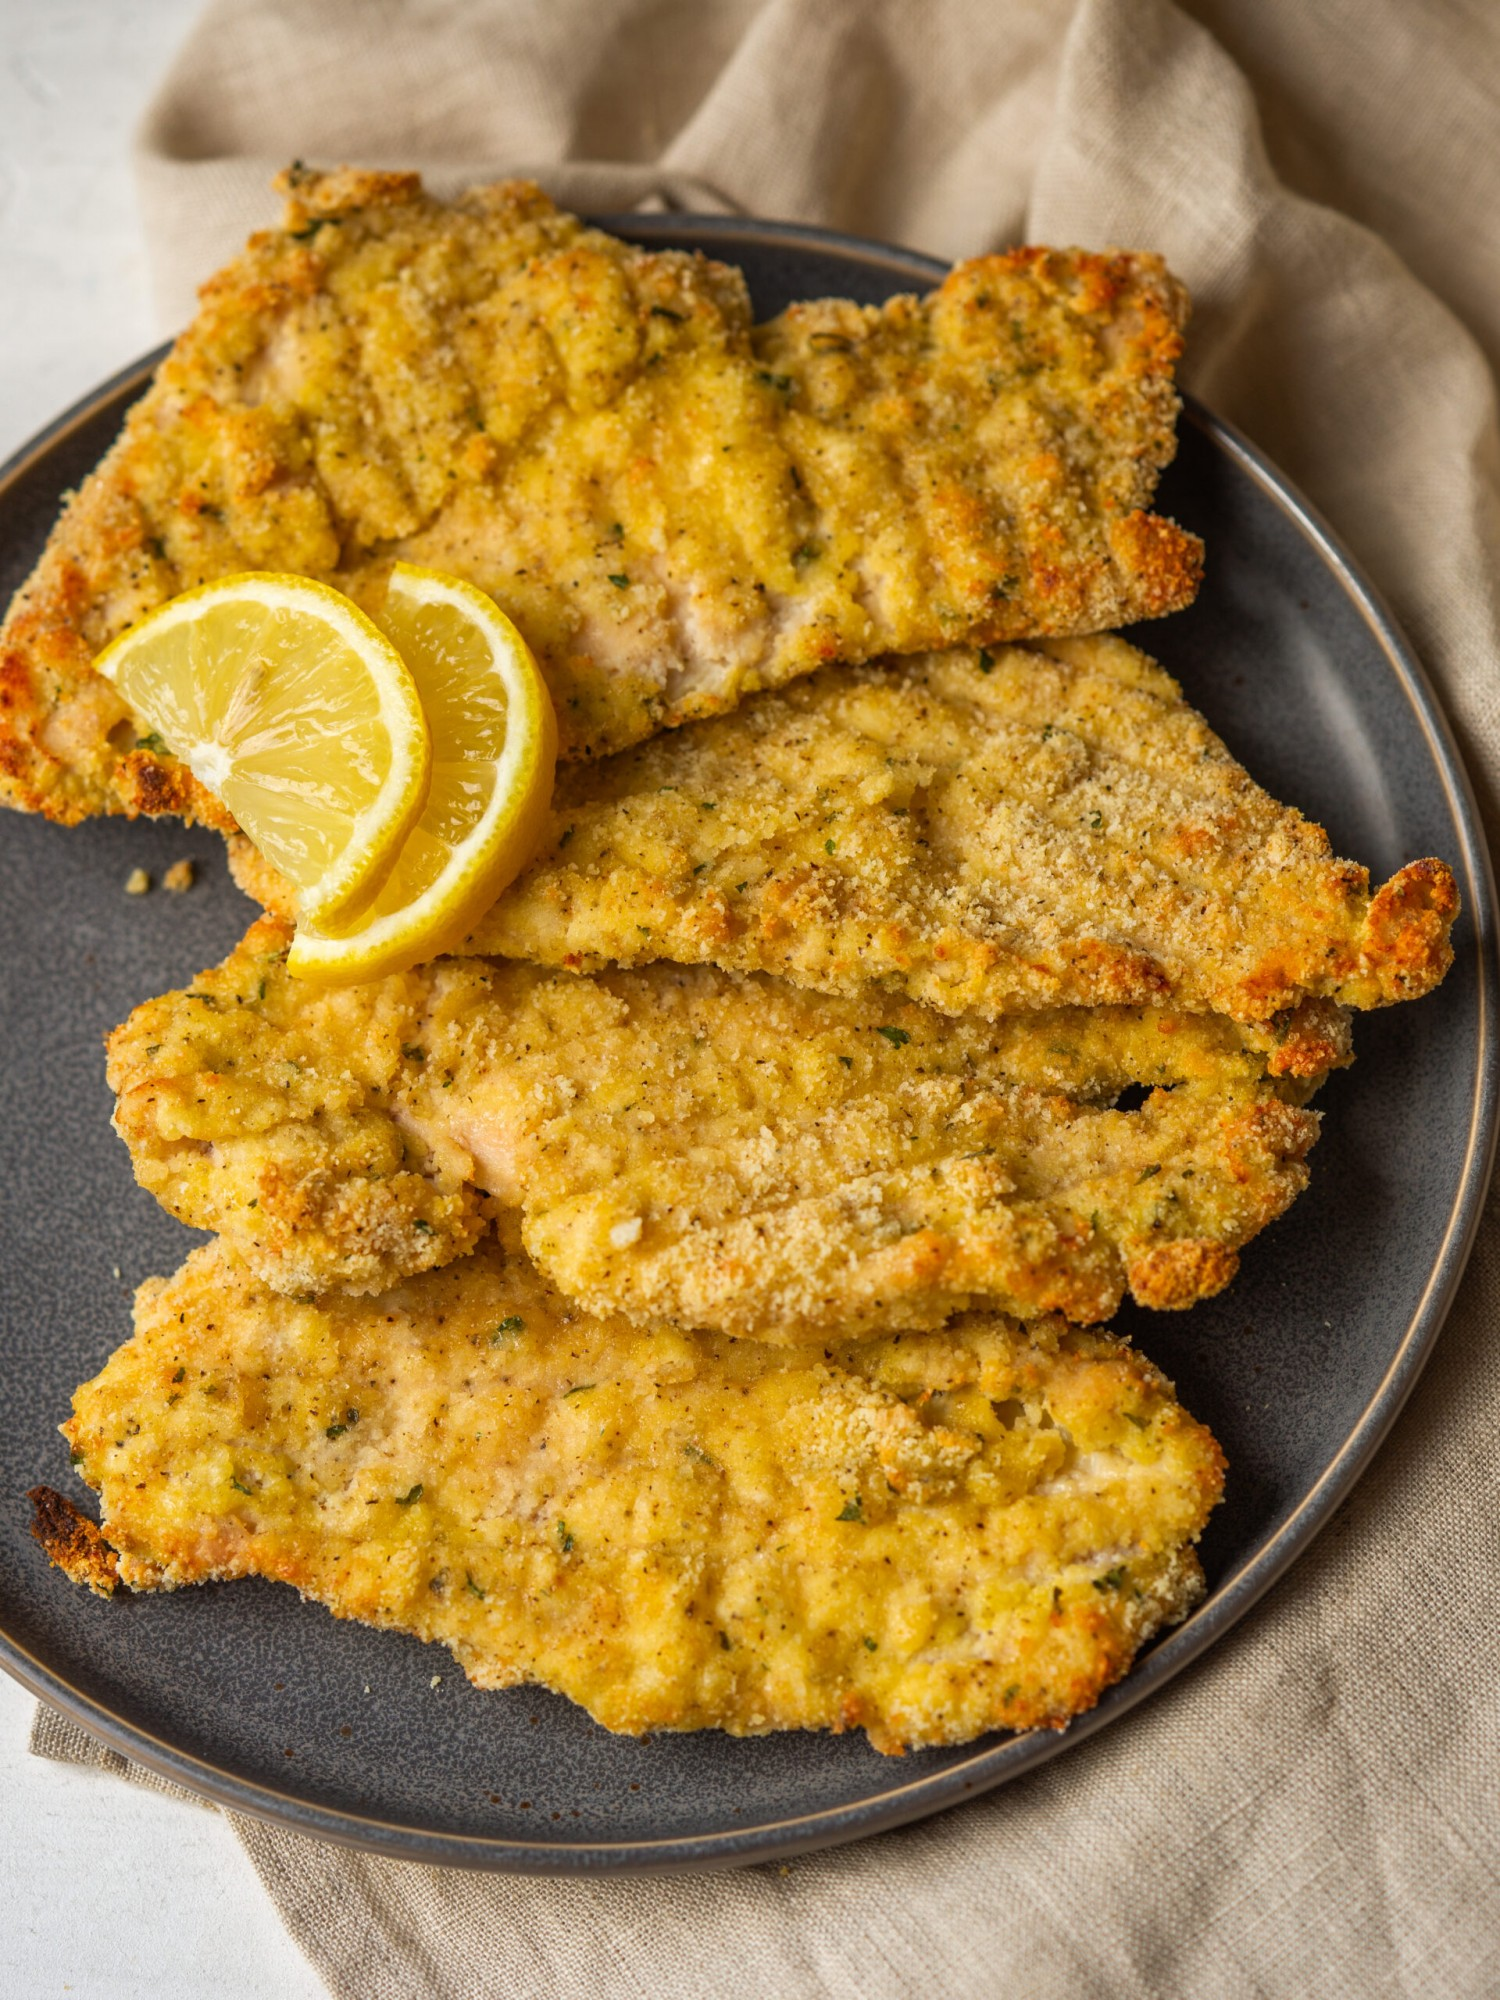 Above view of baked chicken cutlets on a plate with lemon slices